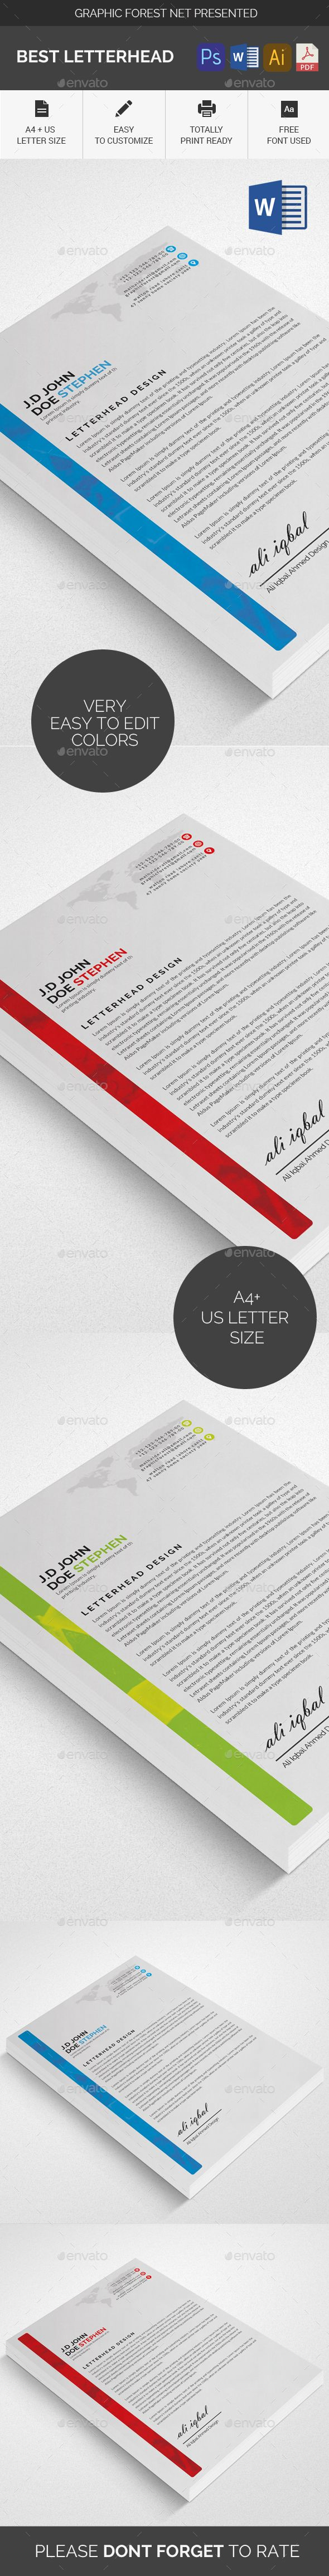 #Letterhead - #Stationery Print Templates Download here: https://graphicriver.net/item/letterhead/20452229?ref=alena994